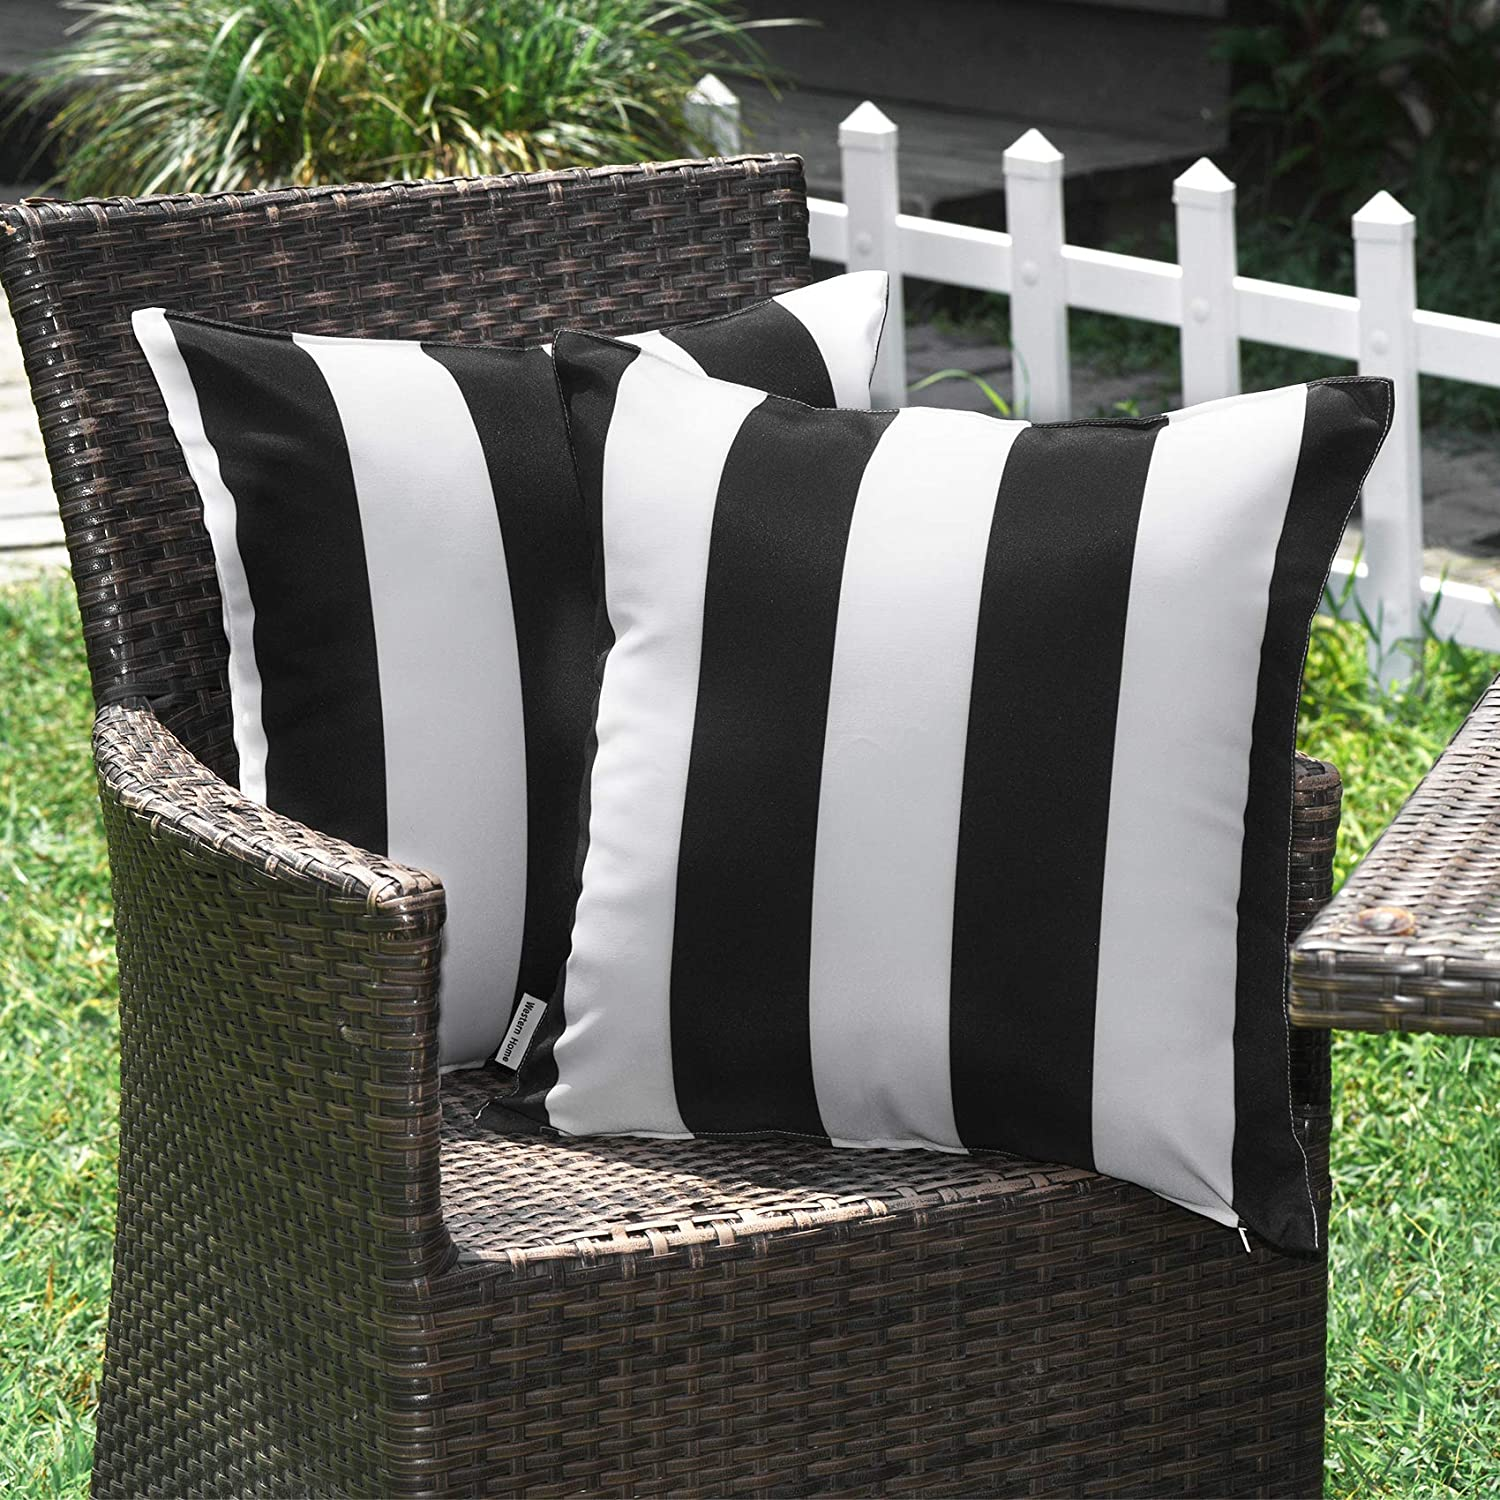 WESTERN HOME WH Outdoor Pillow Covers 18x18 Waterproof, Stripe Square Pillowcases Patio Throw Pillow Covers Cushions for Couch Bench Tent Garden - Pack of 2 Pillow Covers Black